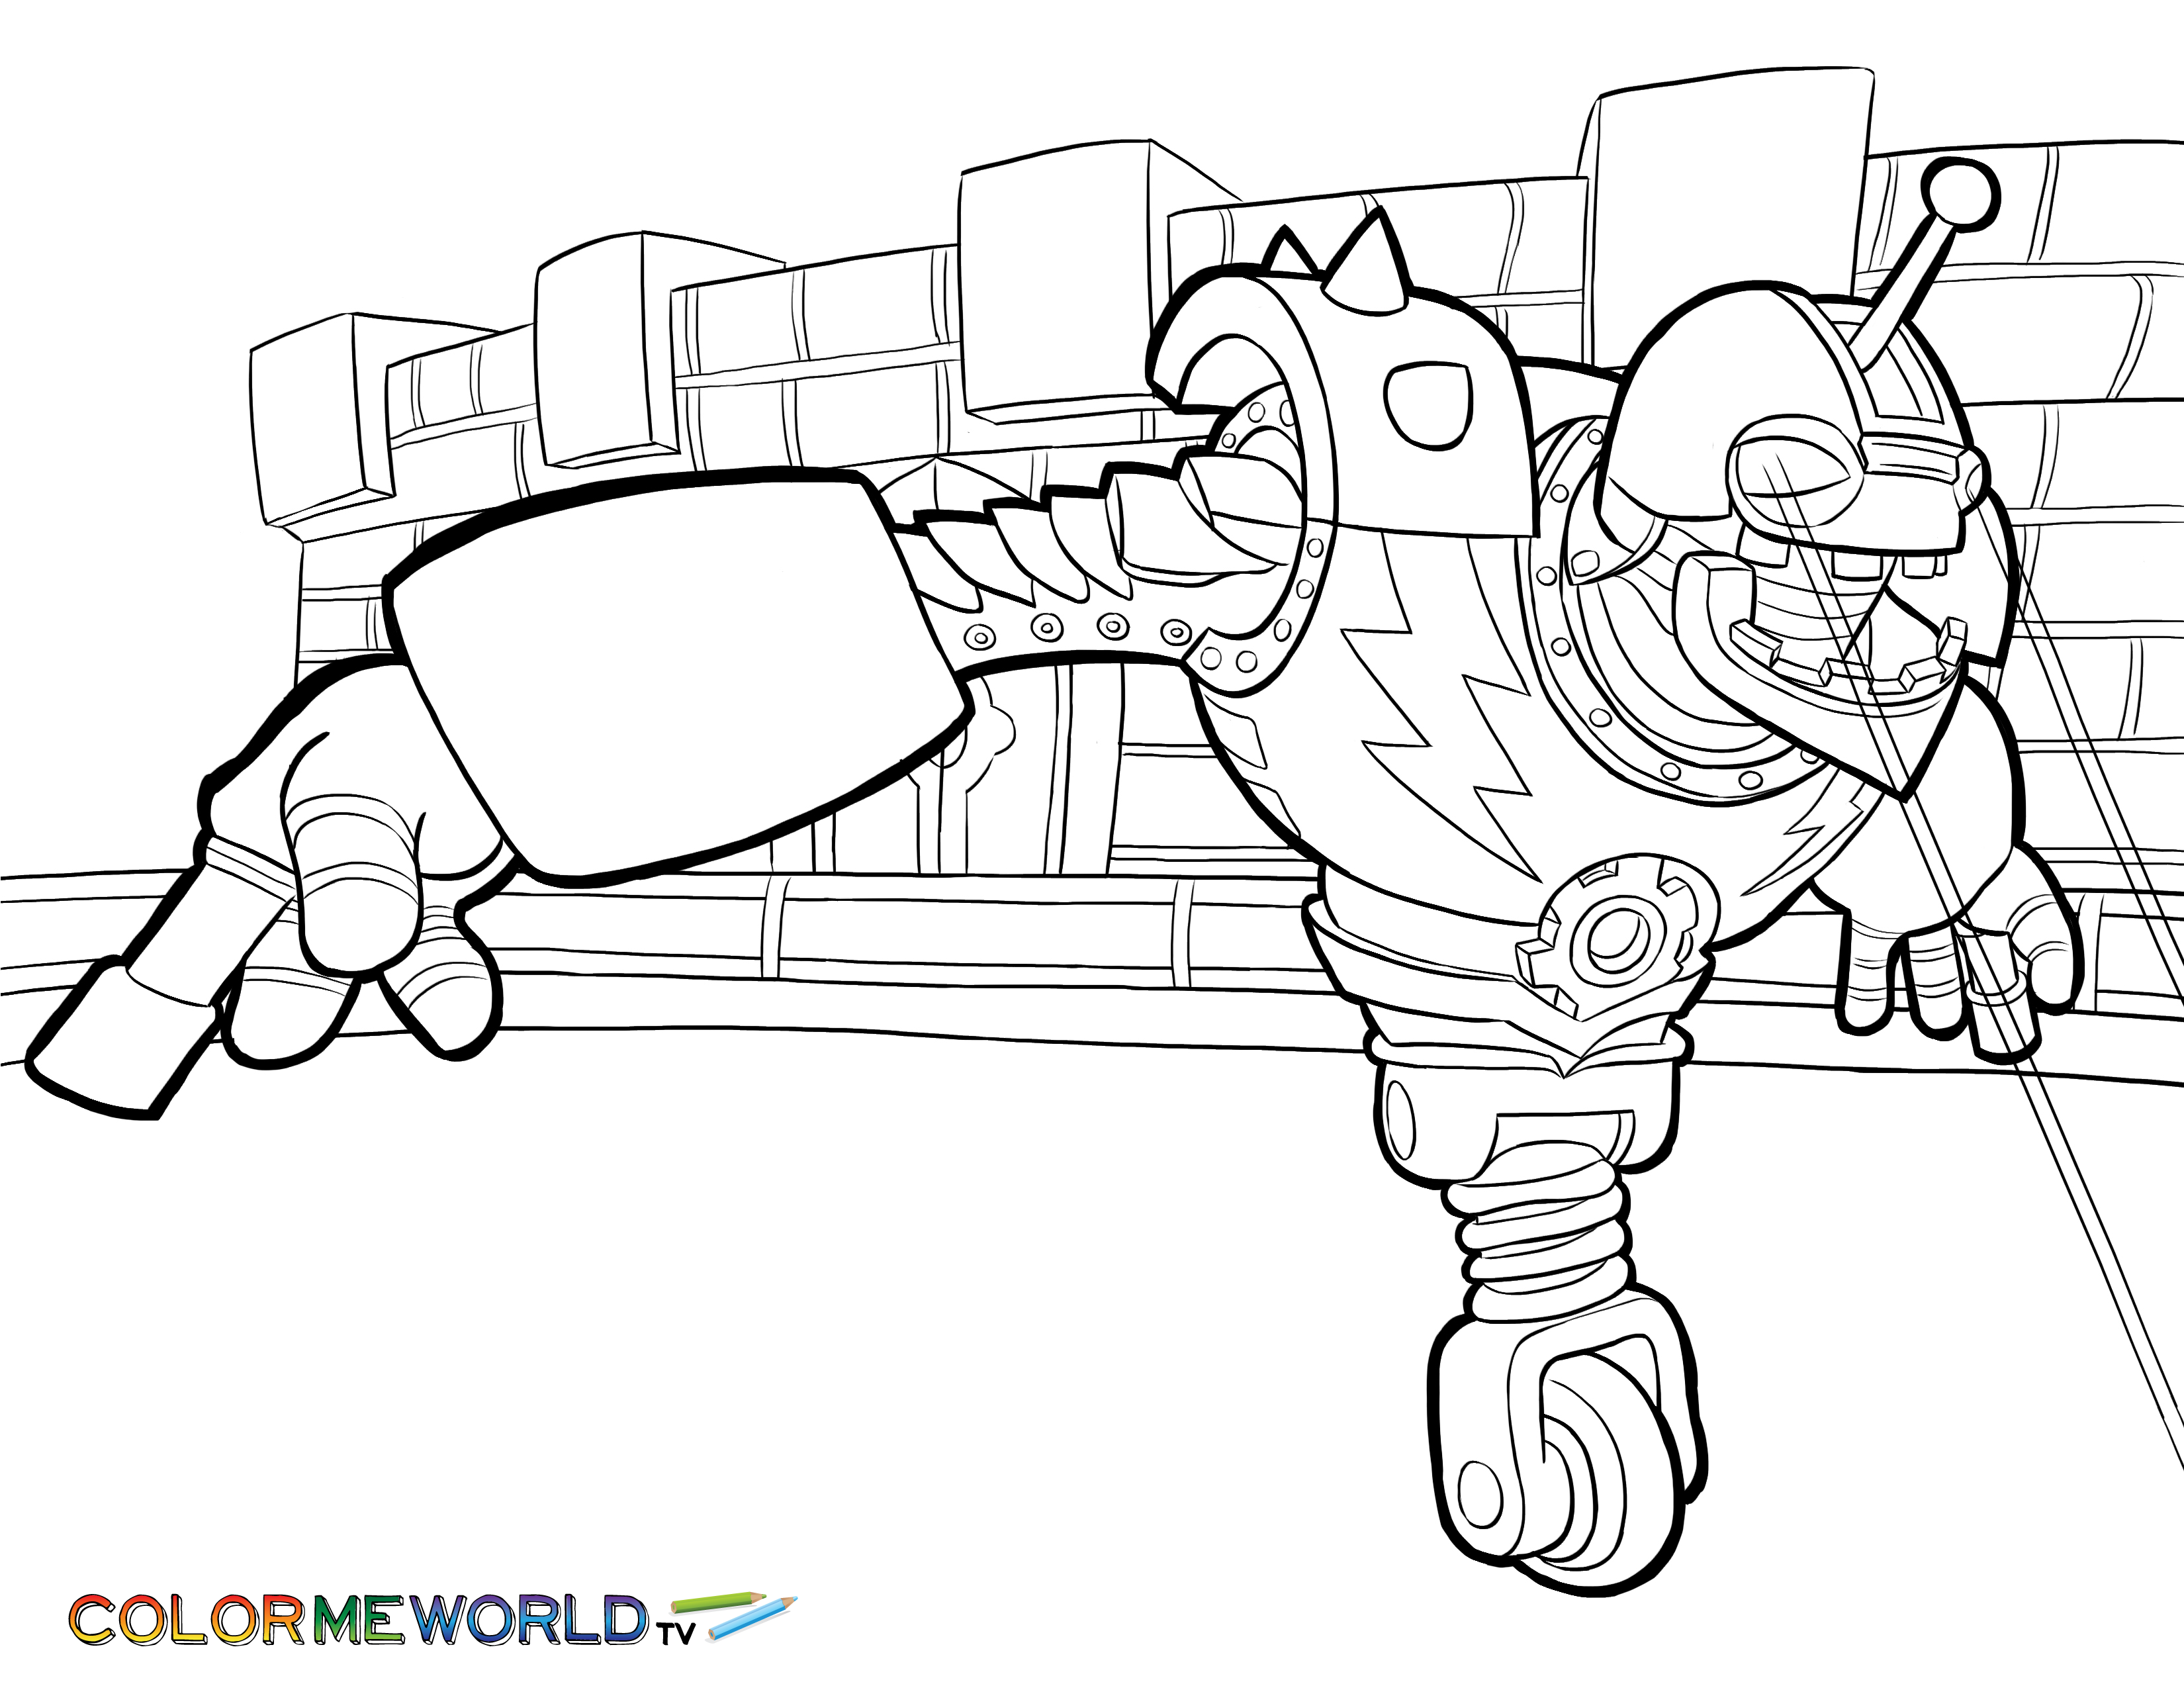 Free Printable Skylanders Coloring Pages | 2550x3300